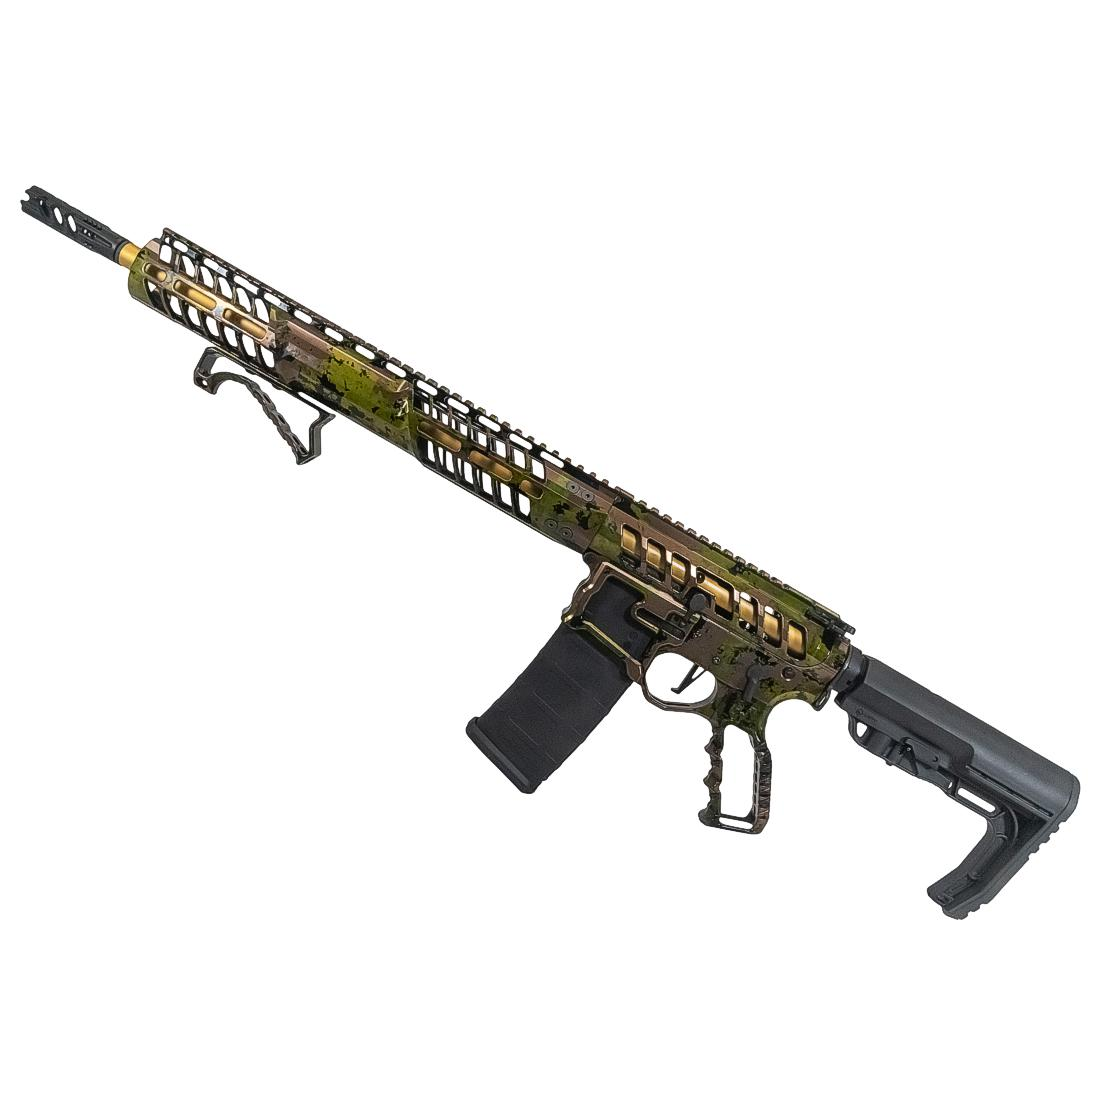 Tss Exclusive F1 Udr 15 Style 2 Outlaw Gold 3gun Competition Rifle Texas Shooter S Supply